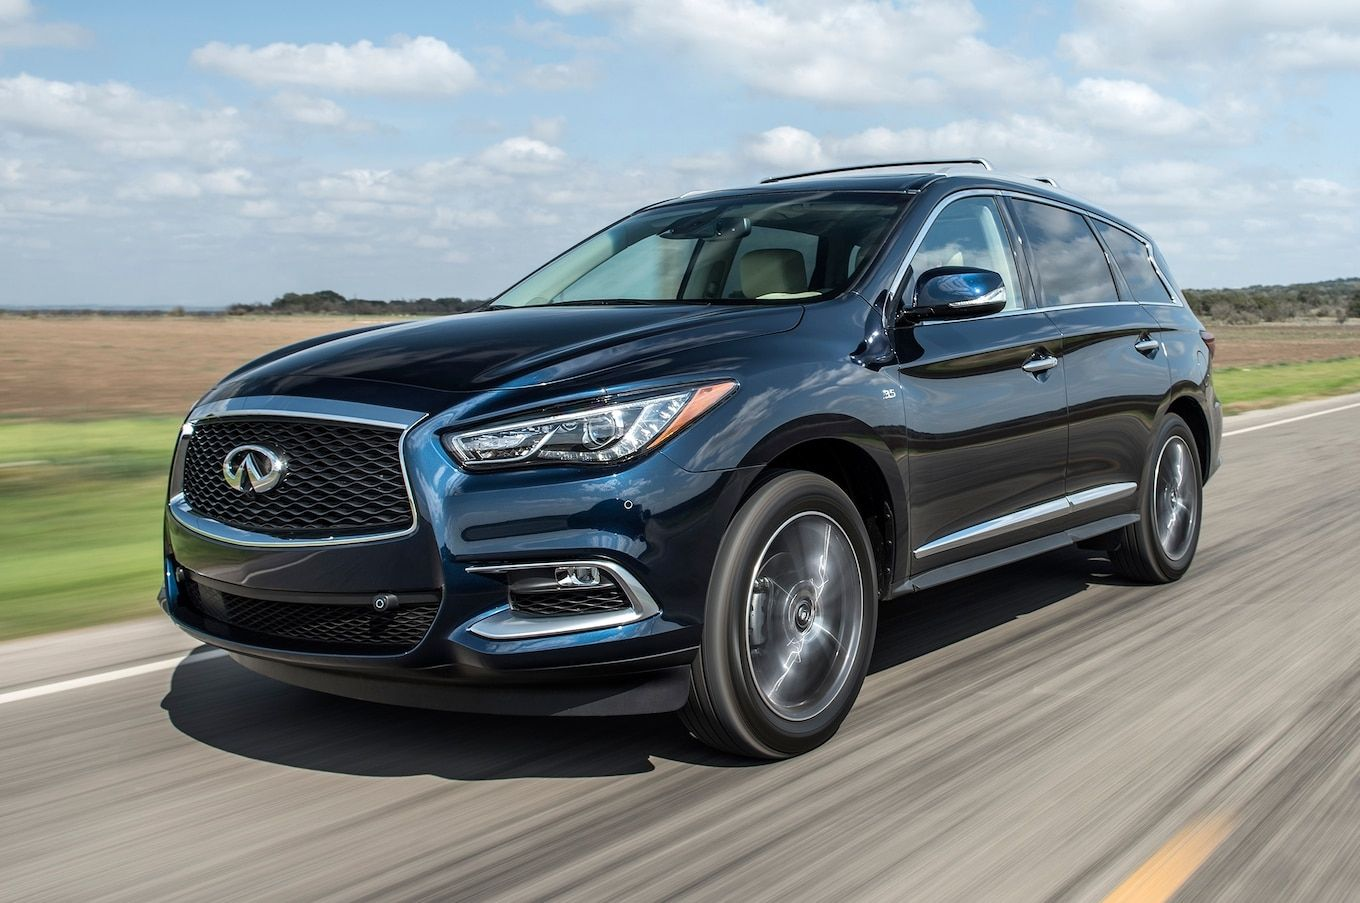 The Upcoming 2020 Infiniti Qx60 Here Are The Full Review Brand